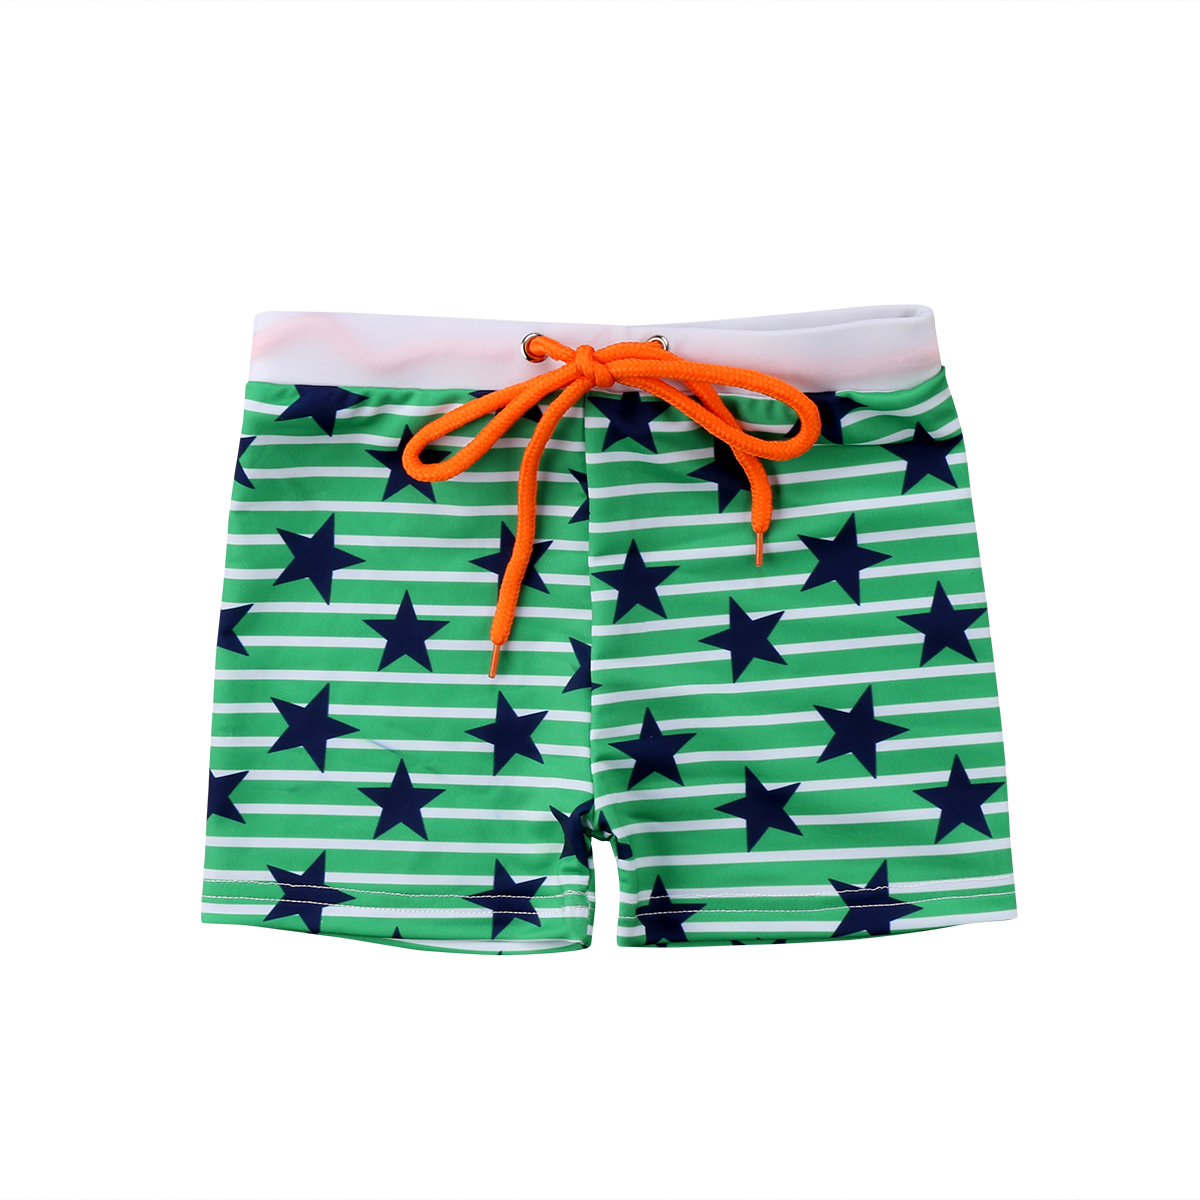 Boys Swimming Trunks Swim Shorts Skull Shark Stars Stripe Printed Summer Swimsuit Beachwear Kids Summer Trunks 6M-6Y